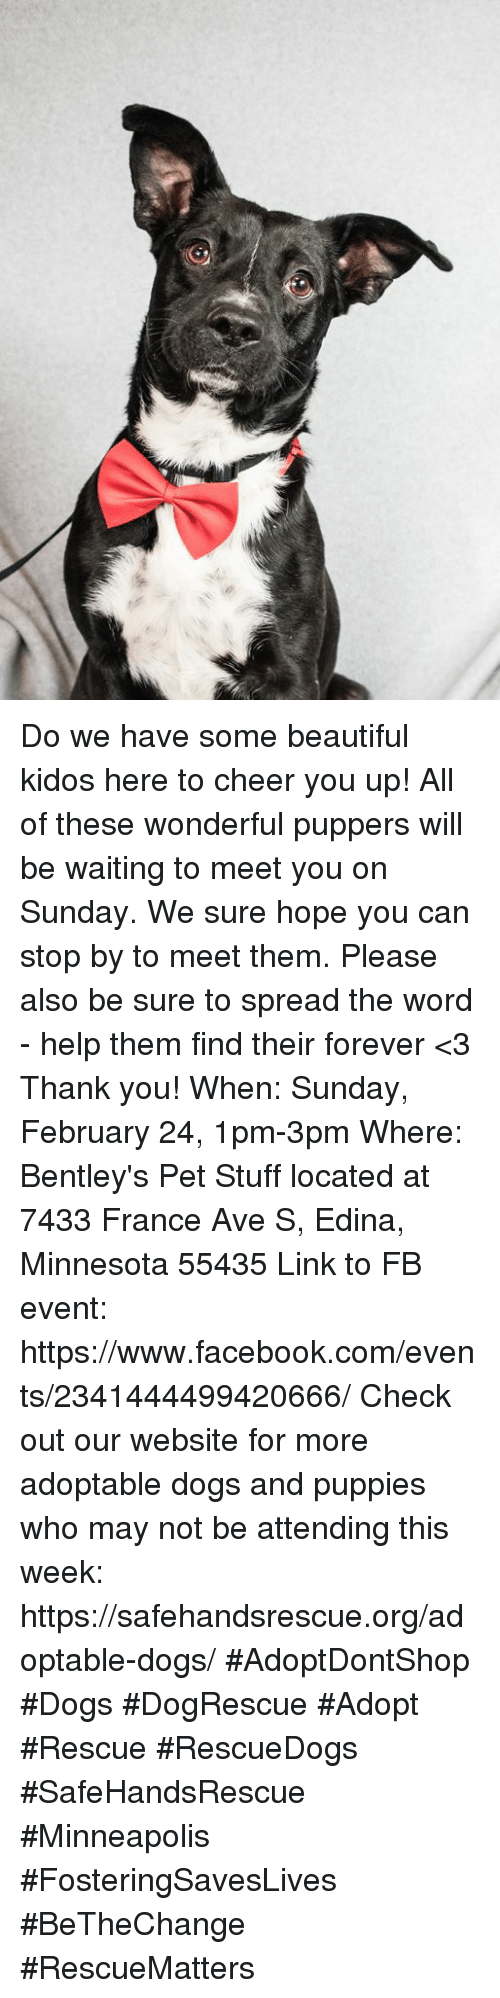 Beautiful, Dogs, and Facebook: Do we have some beautiful kidos here to cheer you up! All of these wonderful puppers will be waiting to meet you on Sunday. We sure hope you can stop by to meet them.   Please also be sure to spread the word - help them find their forever <3 Thank you!  When: Sunday, February 24, 1pm-3pm  Where: Bentley's Pet Stuff located at 7433 France Ave S, Edina, Minnesota 55435 Link to FB event: https://www.facebook.com/events/2341444499420666/  Check out our website for more adoptable dogs and puppies who may not be attending this week: https://safehandsrescue.org/adoptable-dogs/  #AdoptDontShop #Dogs #DogRescue #Adopt #Rescue #RescueDogs #SafeHandsRescue #Minneapolis #FosteringSavesLives #BeTheChange #RescueMatters